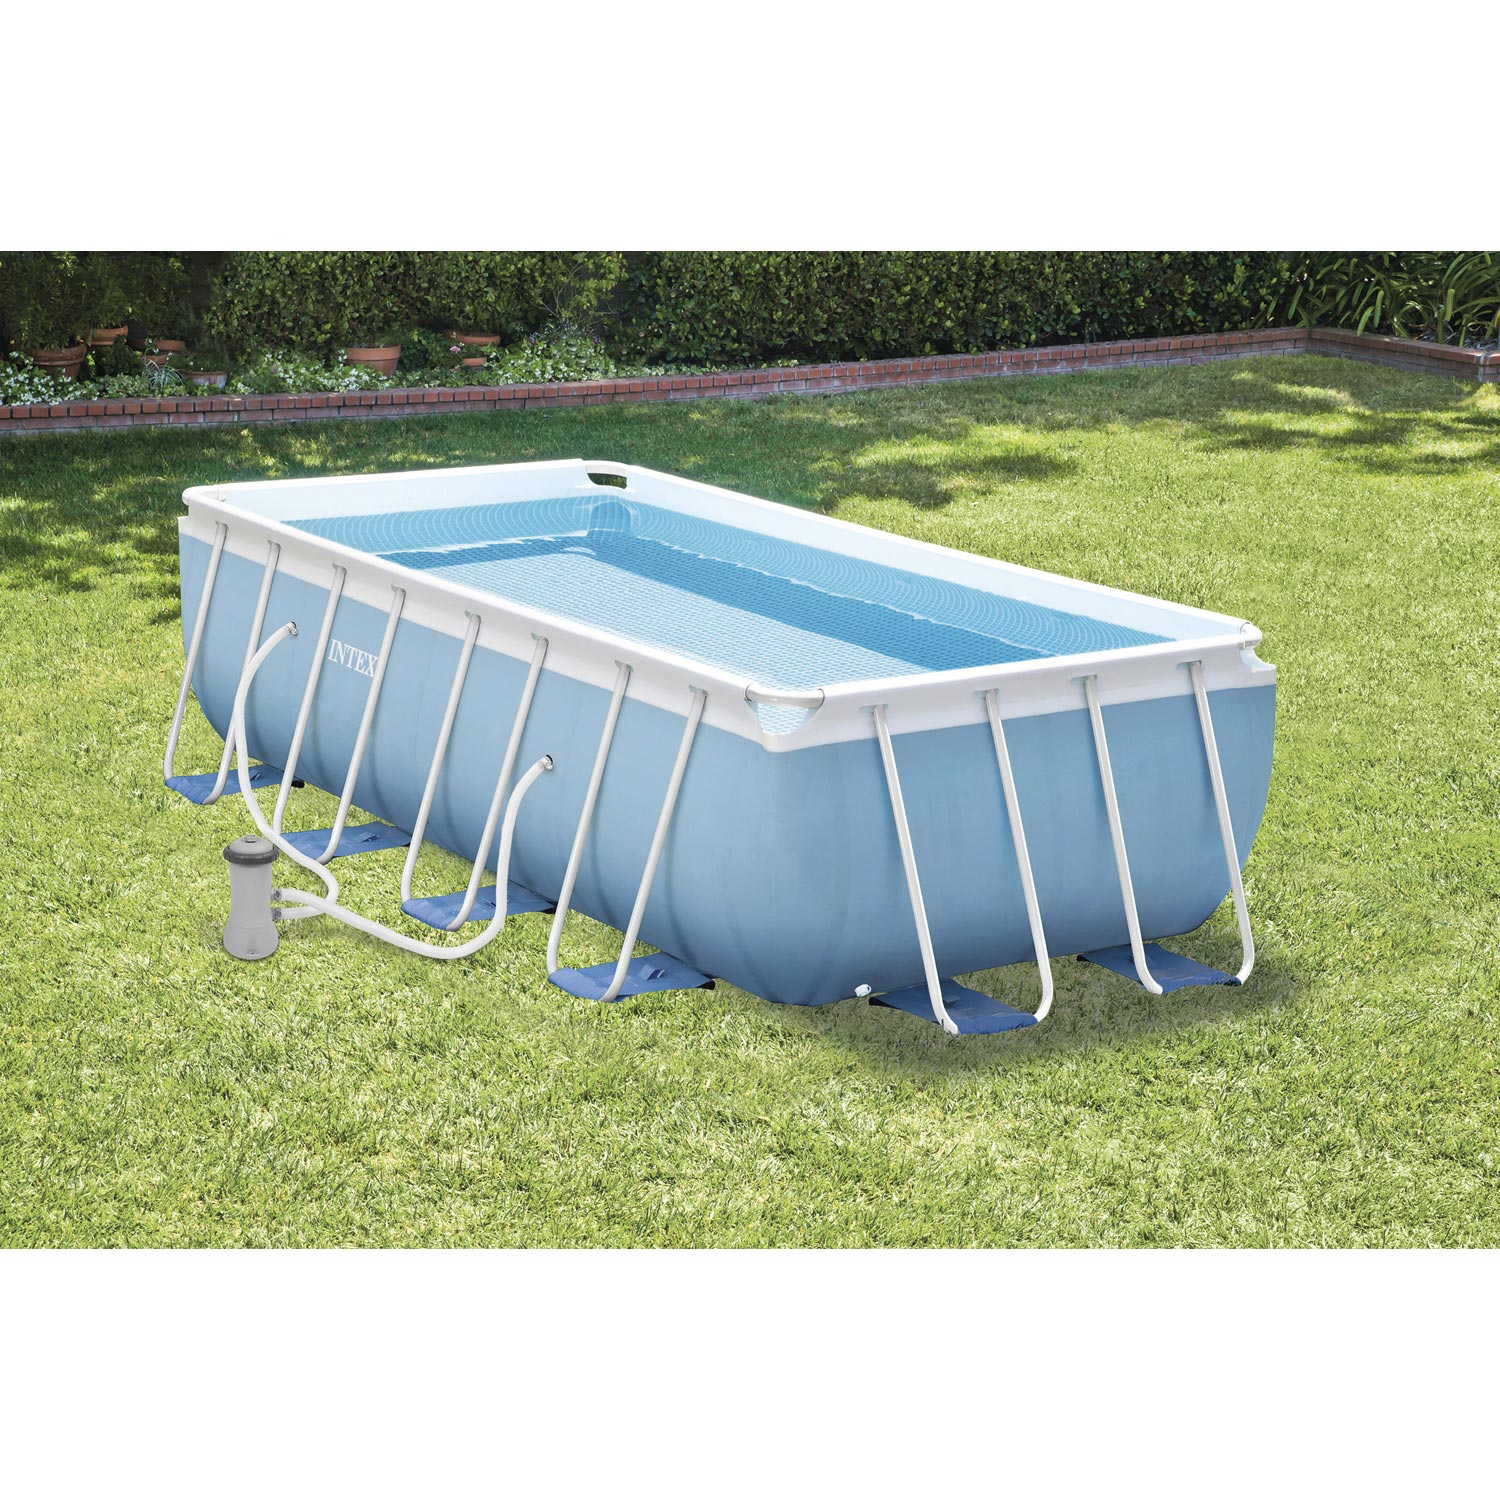 Piscine hors sol autoportante tubulaire prism frame intex for Piscine hors sol declaration